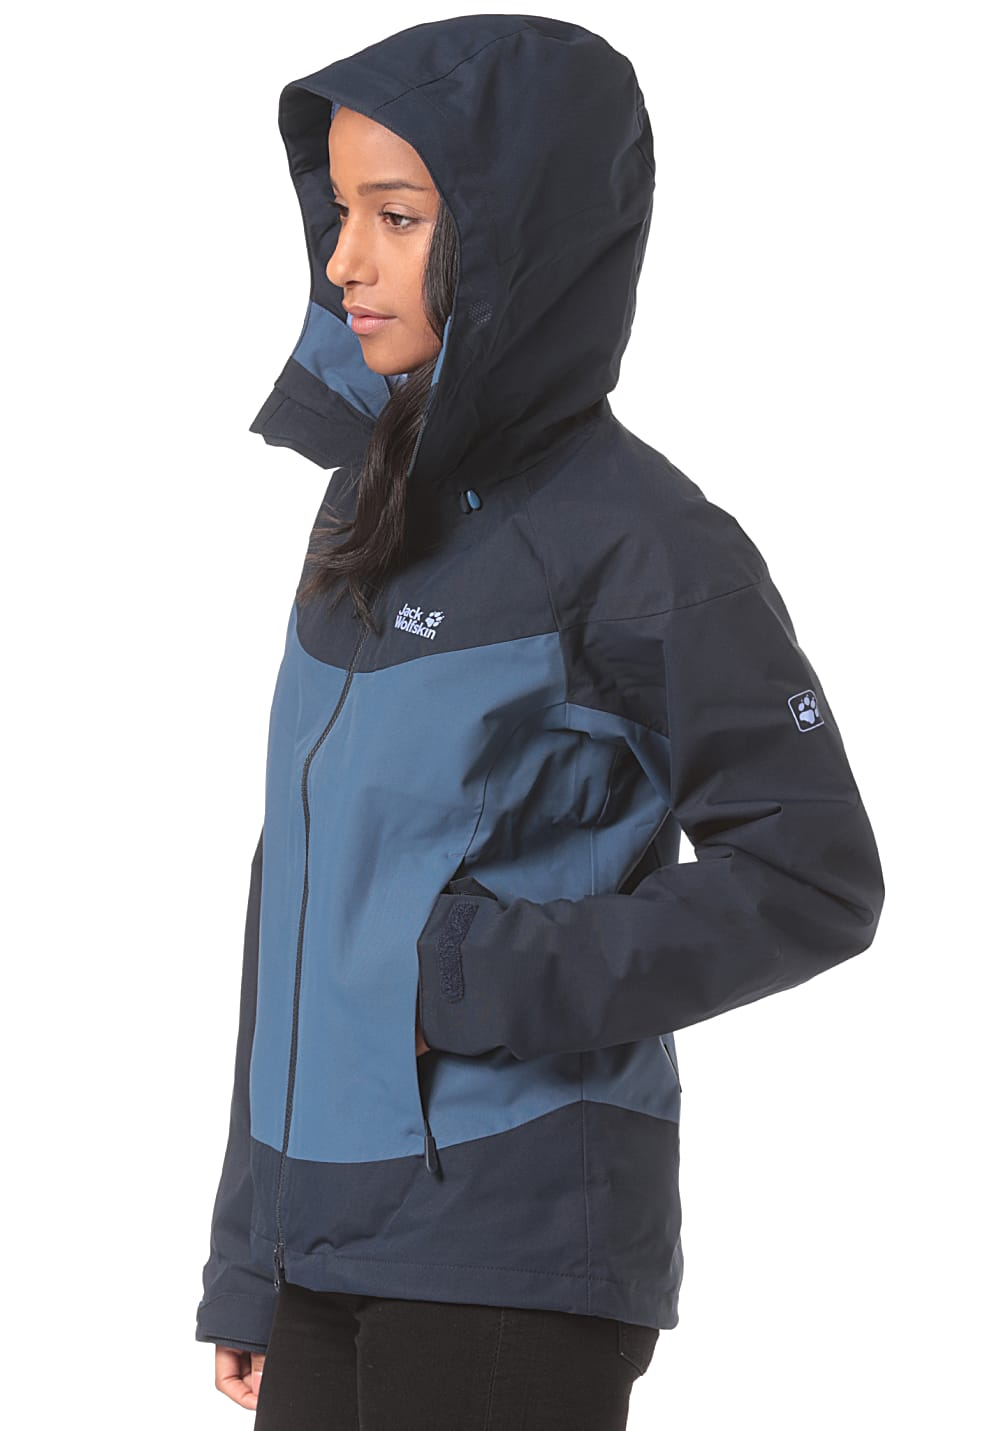 official photos 11fa6 baea3 Jack Wolfskin North Ridge - Outdoorjacke für Damen - Blau